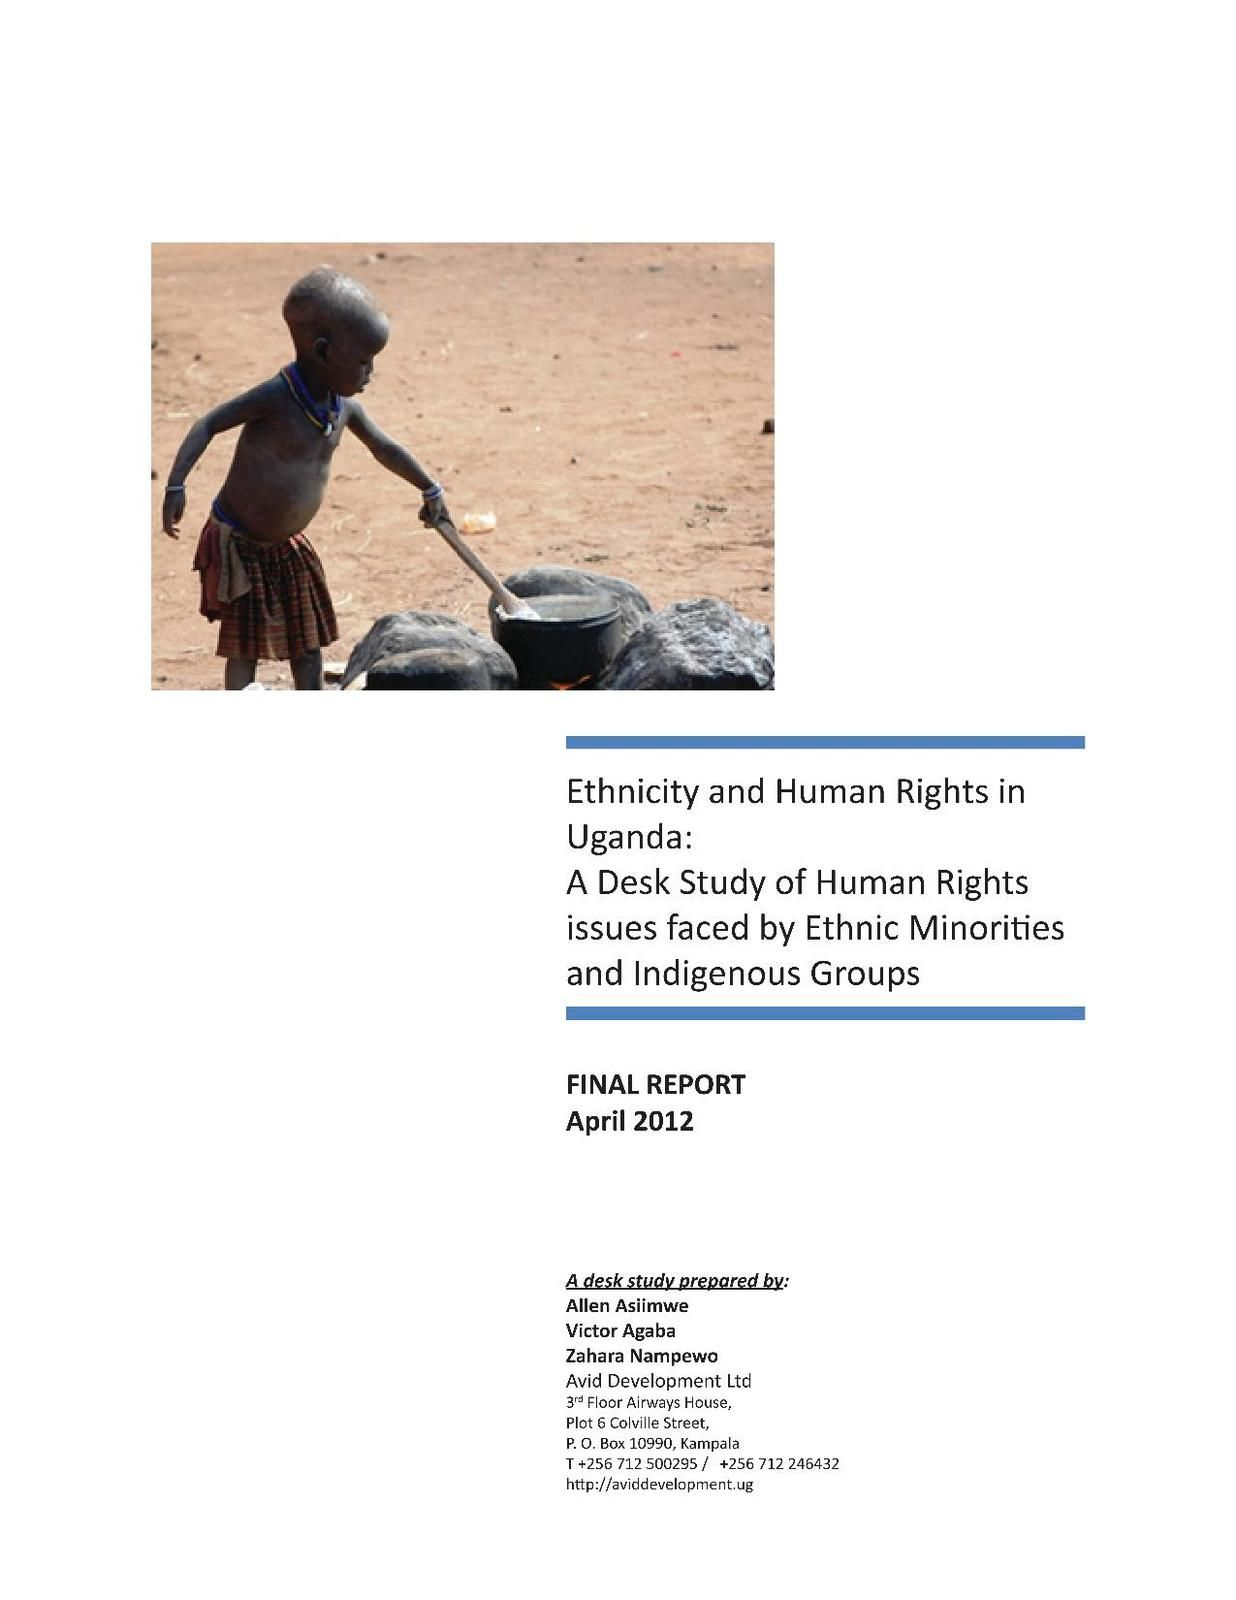 Ethnicity and Human Rights in Uganda